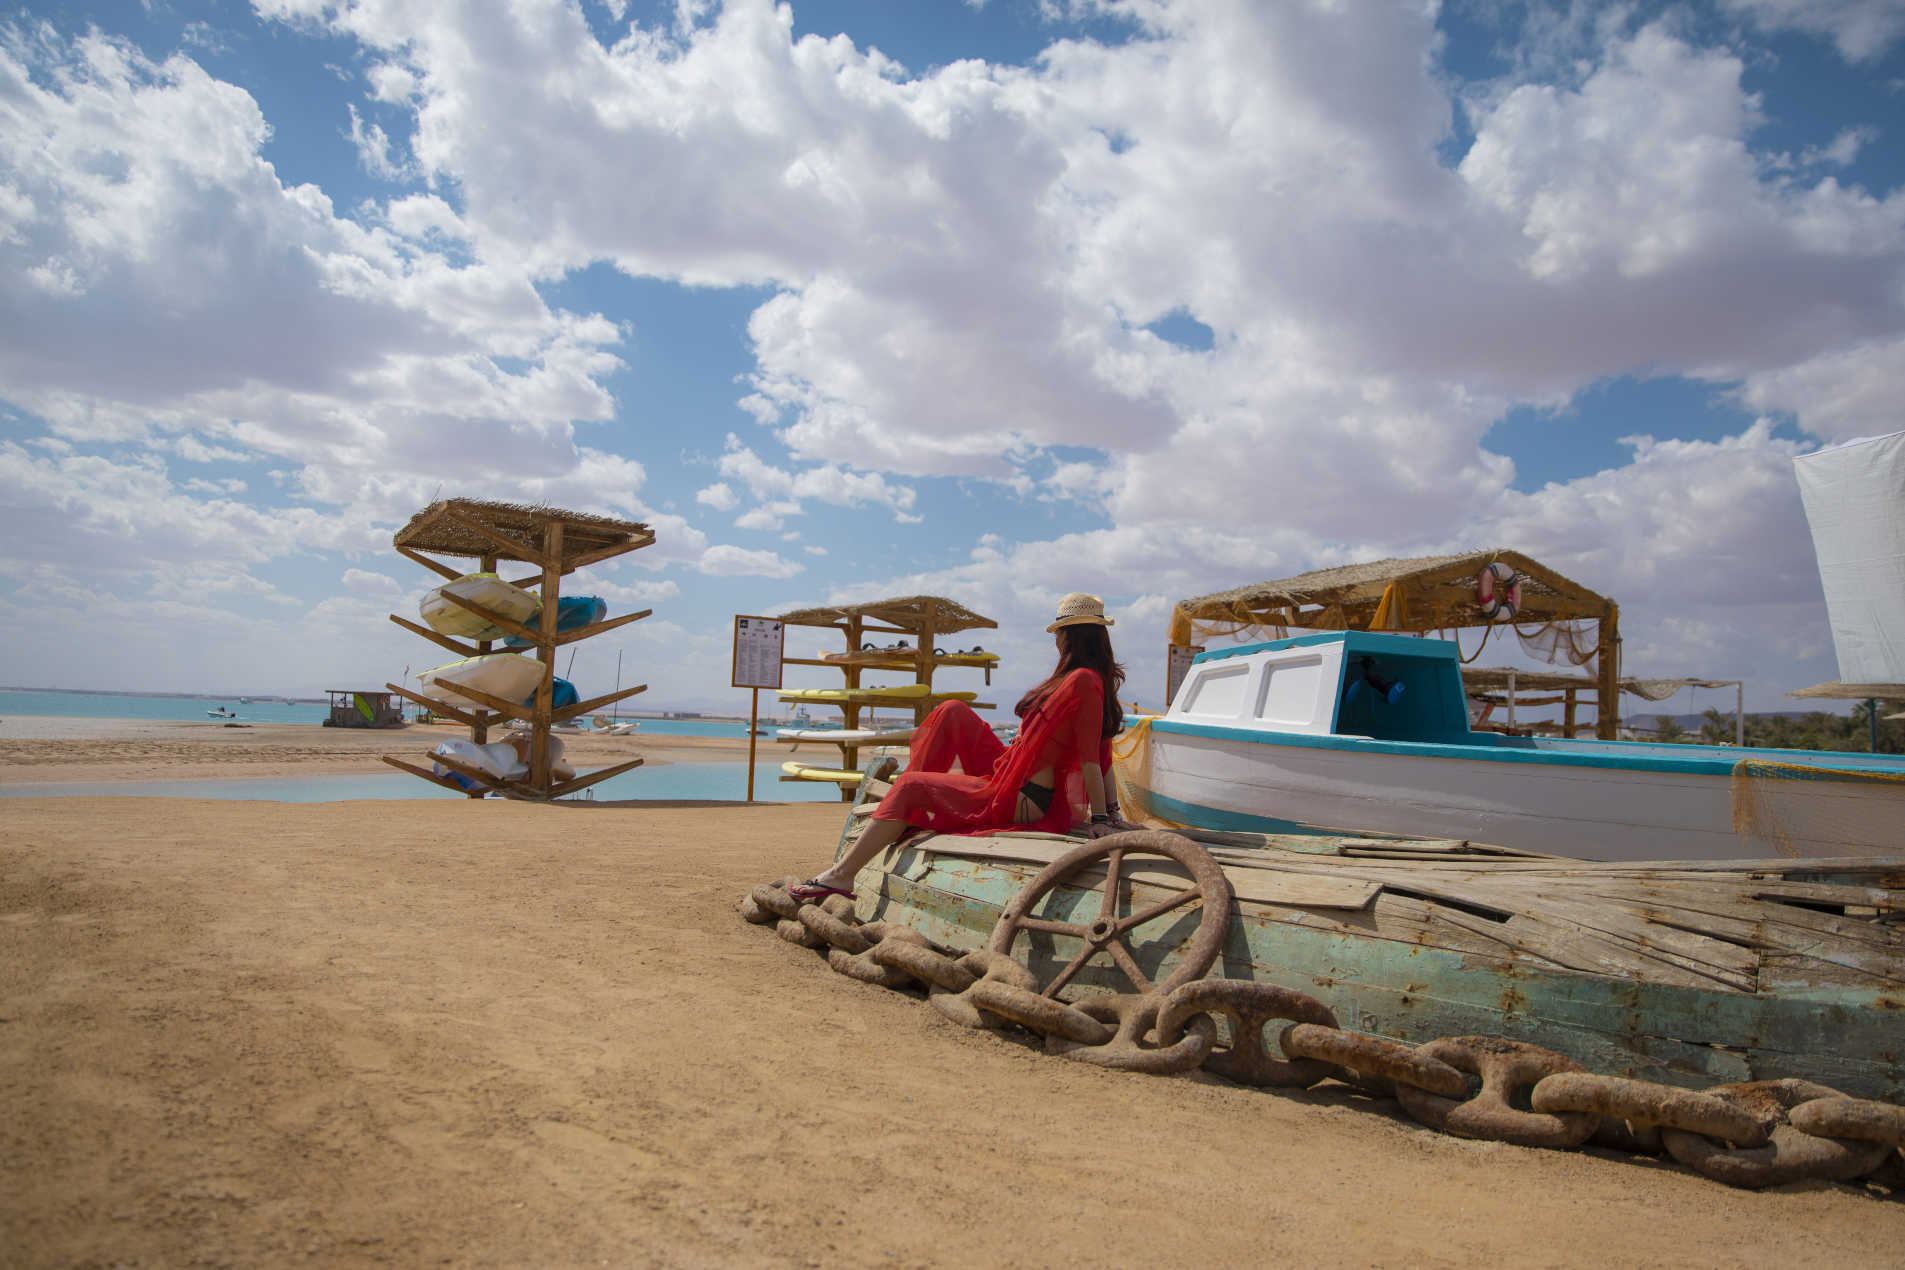 A girl is sitting on a vintage boat at Club Paradisio Sandy Beach and the sky is full of clouds in El Gouna 4 Stars Hotel